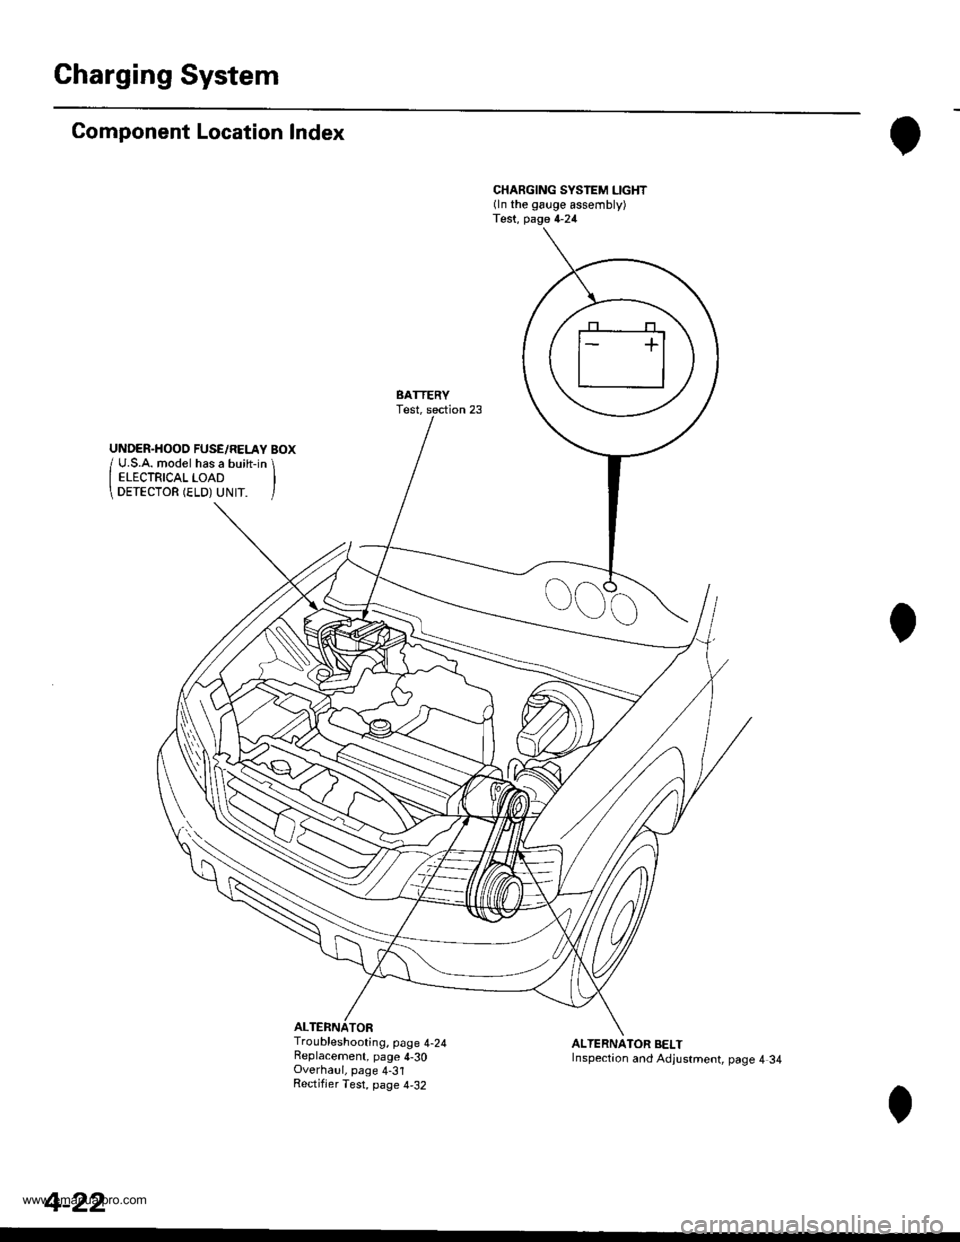 honda cr v spark plugs location diagram